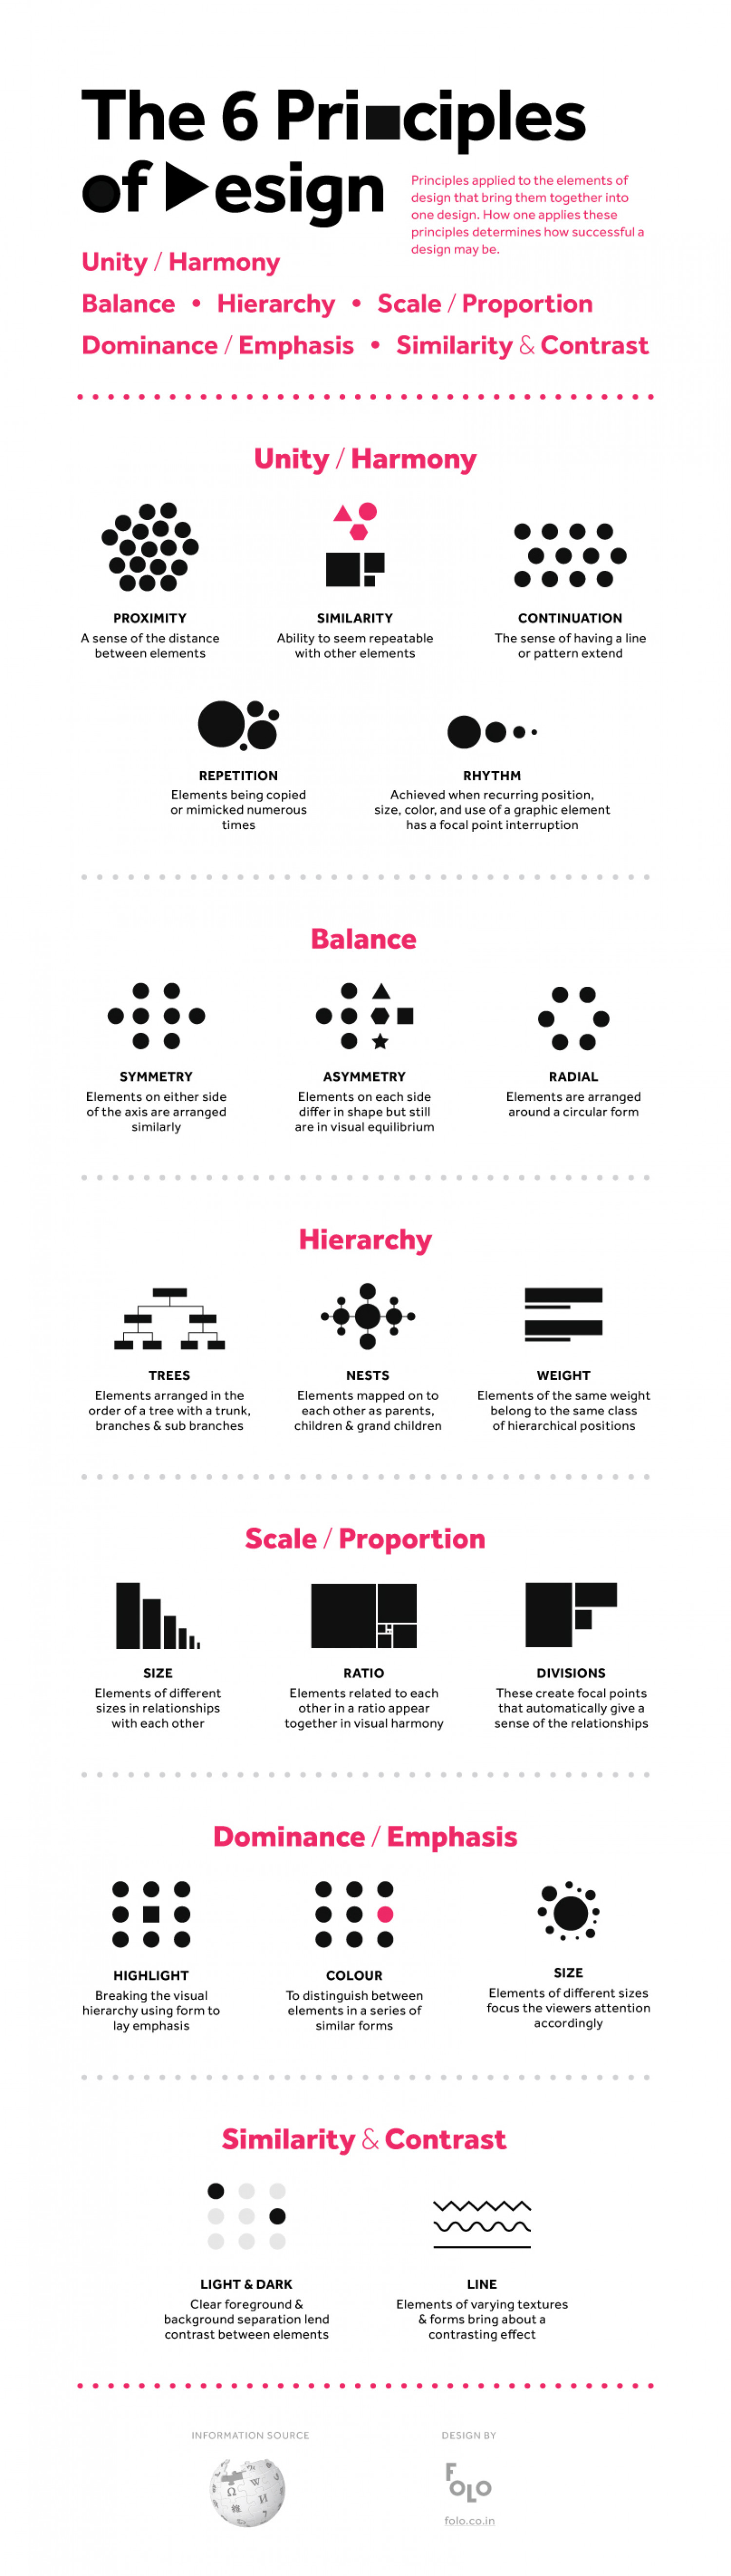 Design And Principles : The principles of design visual ly